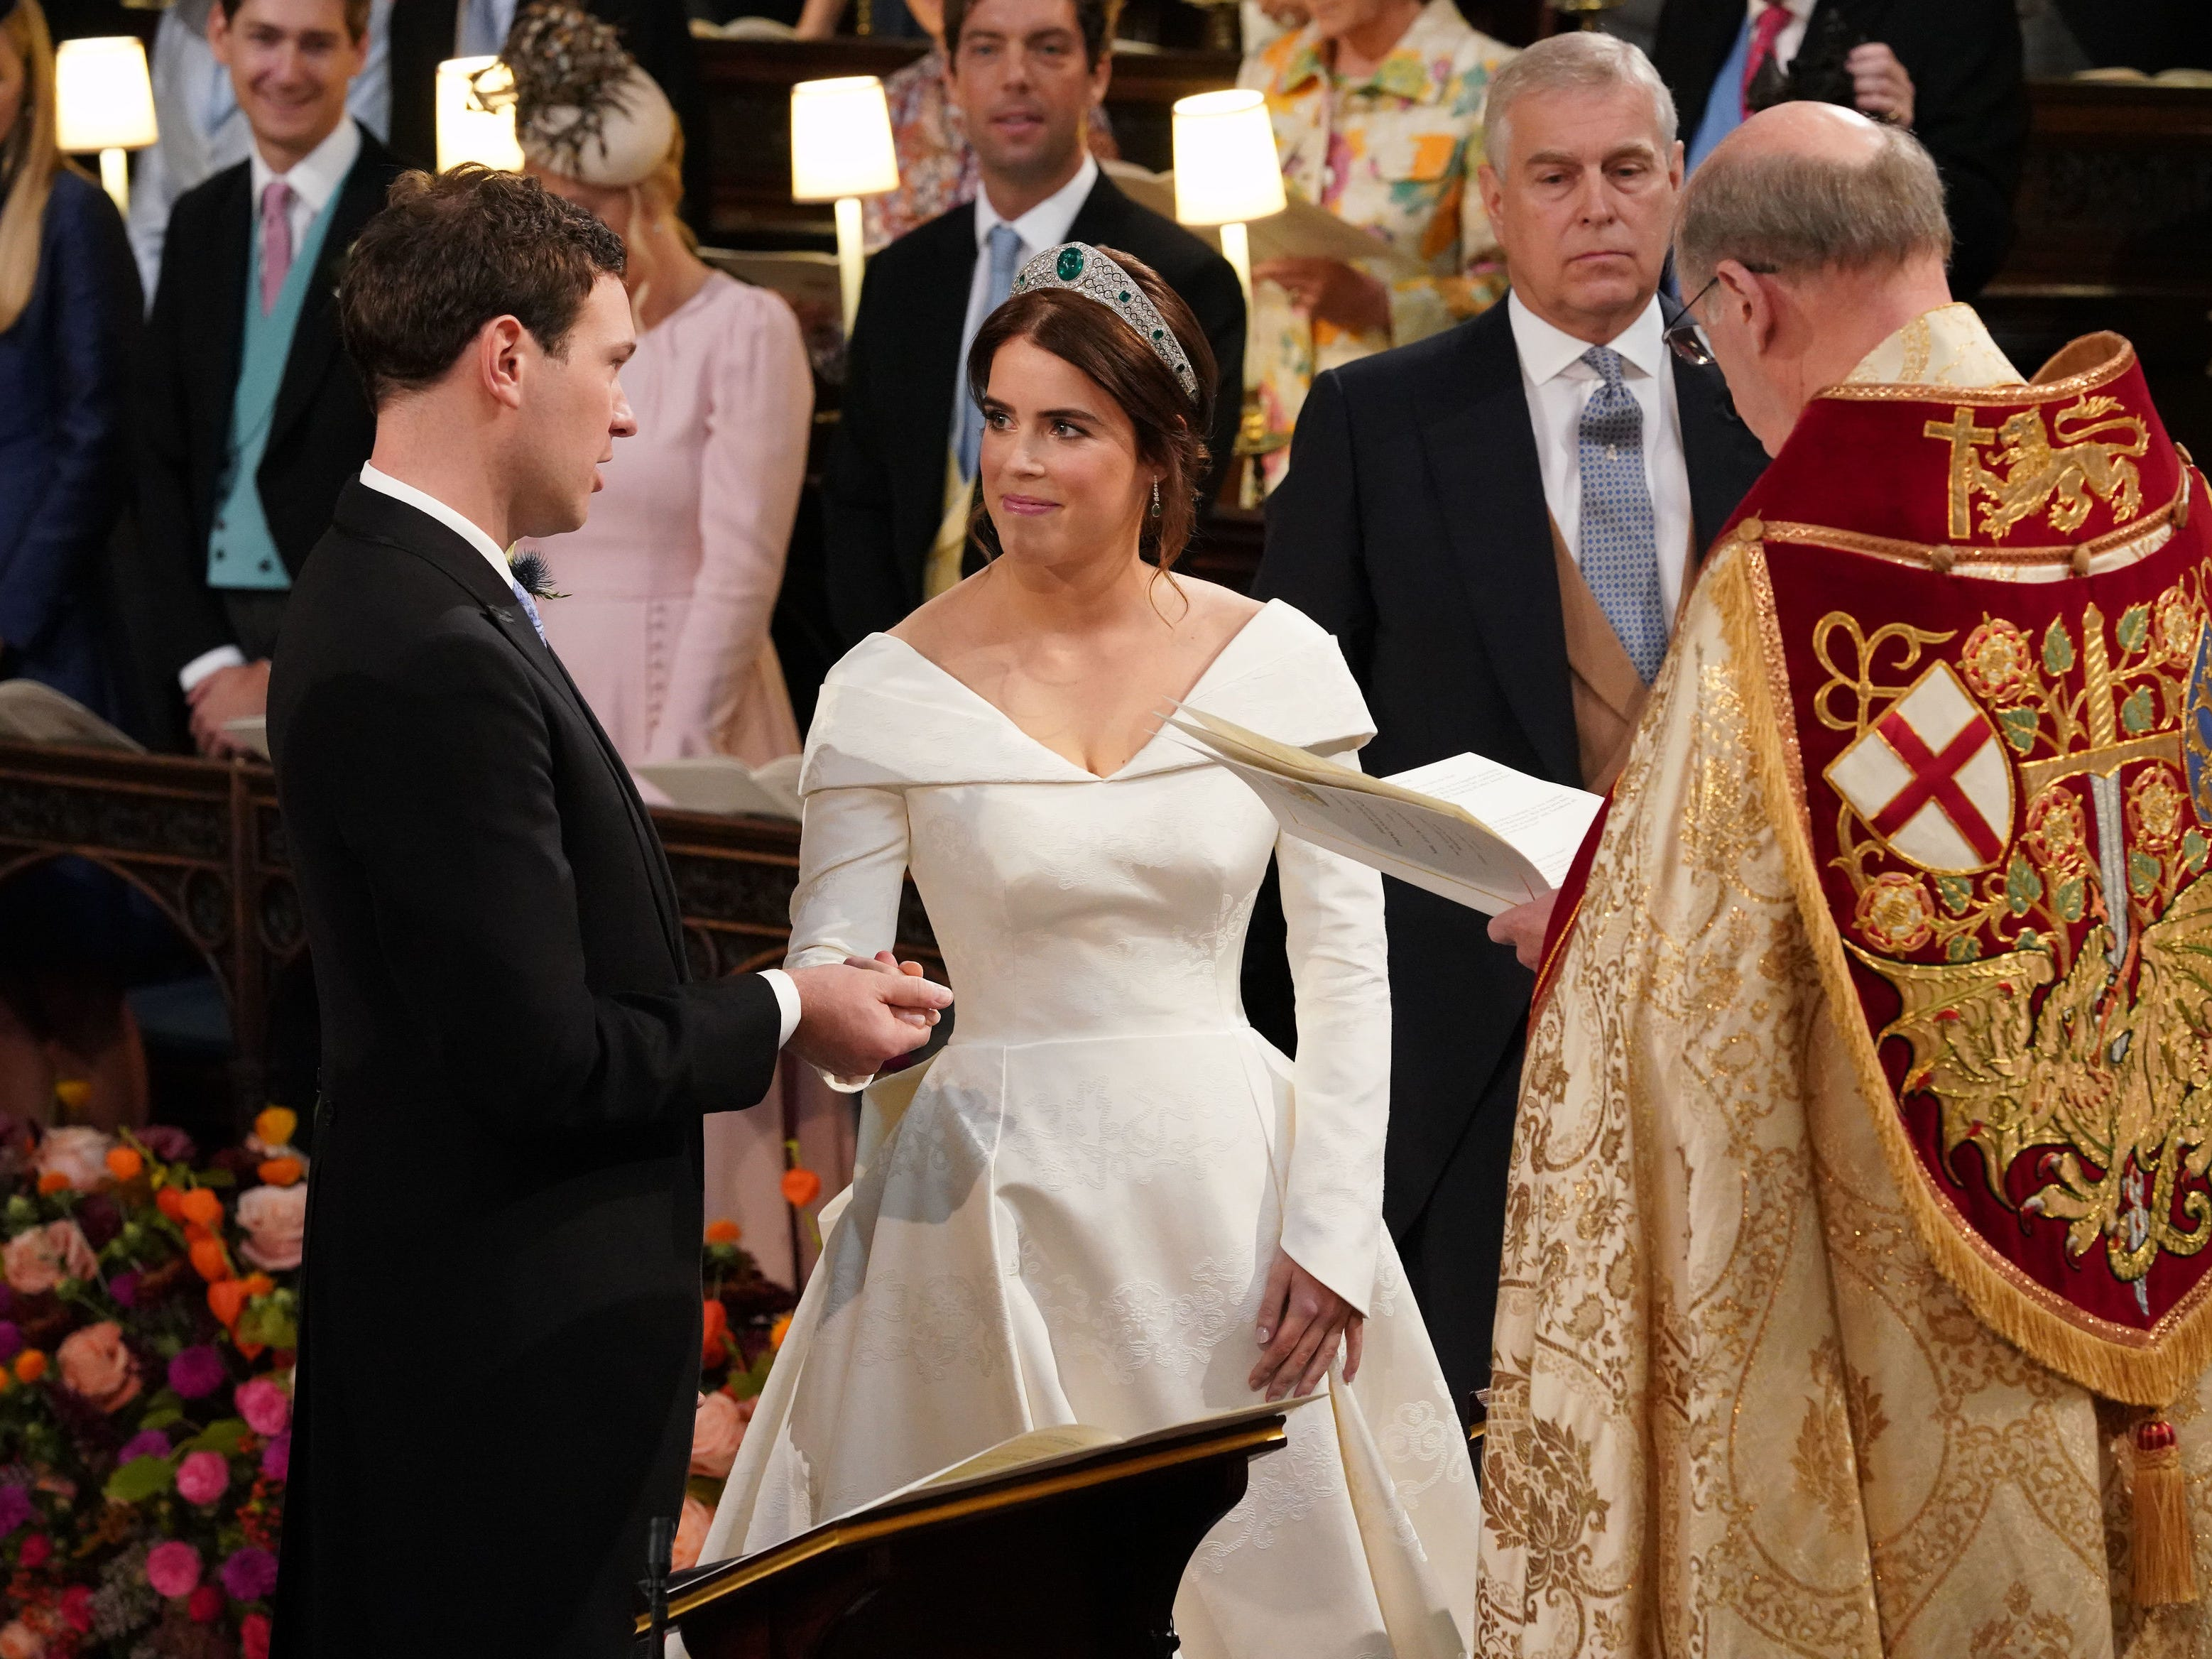 WINDSOR, ENGLAND - OCTOBER 12:  Dean of Windsor, David Conner (R) presides over the wedding ceremony of Princess Eugenie of York and Mr. Jack Brooksbank at St. George's Chapel on October 12, 2018 in Windsor, England. (Photo by Jonathan Brady - WPA Pool/Getty Images) ORG XMIT: 775239781 ORIG FILE ID: 1051951158